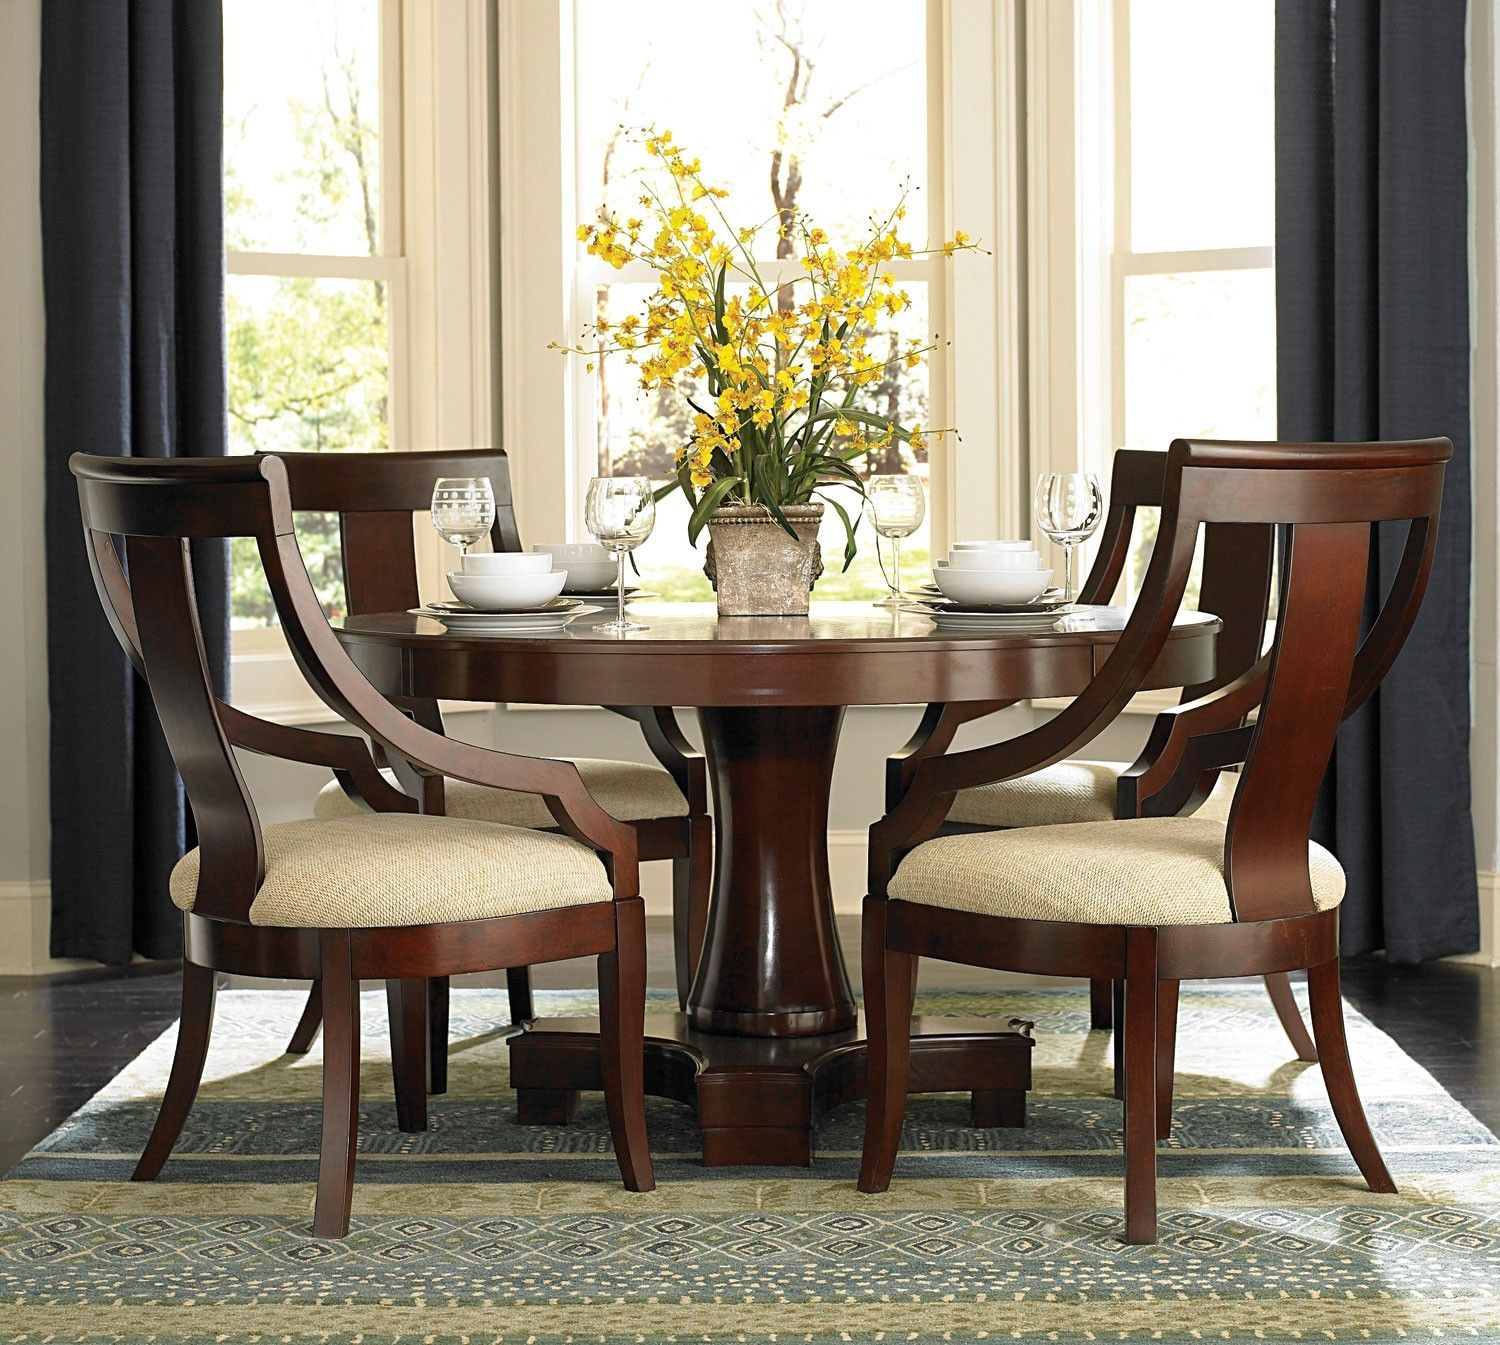 Dining Room Table Round Seats 8 Inspiration 8 Person Round Glass Dining Table  Httpargharts Design Inspiration